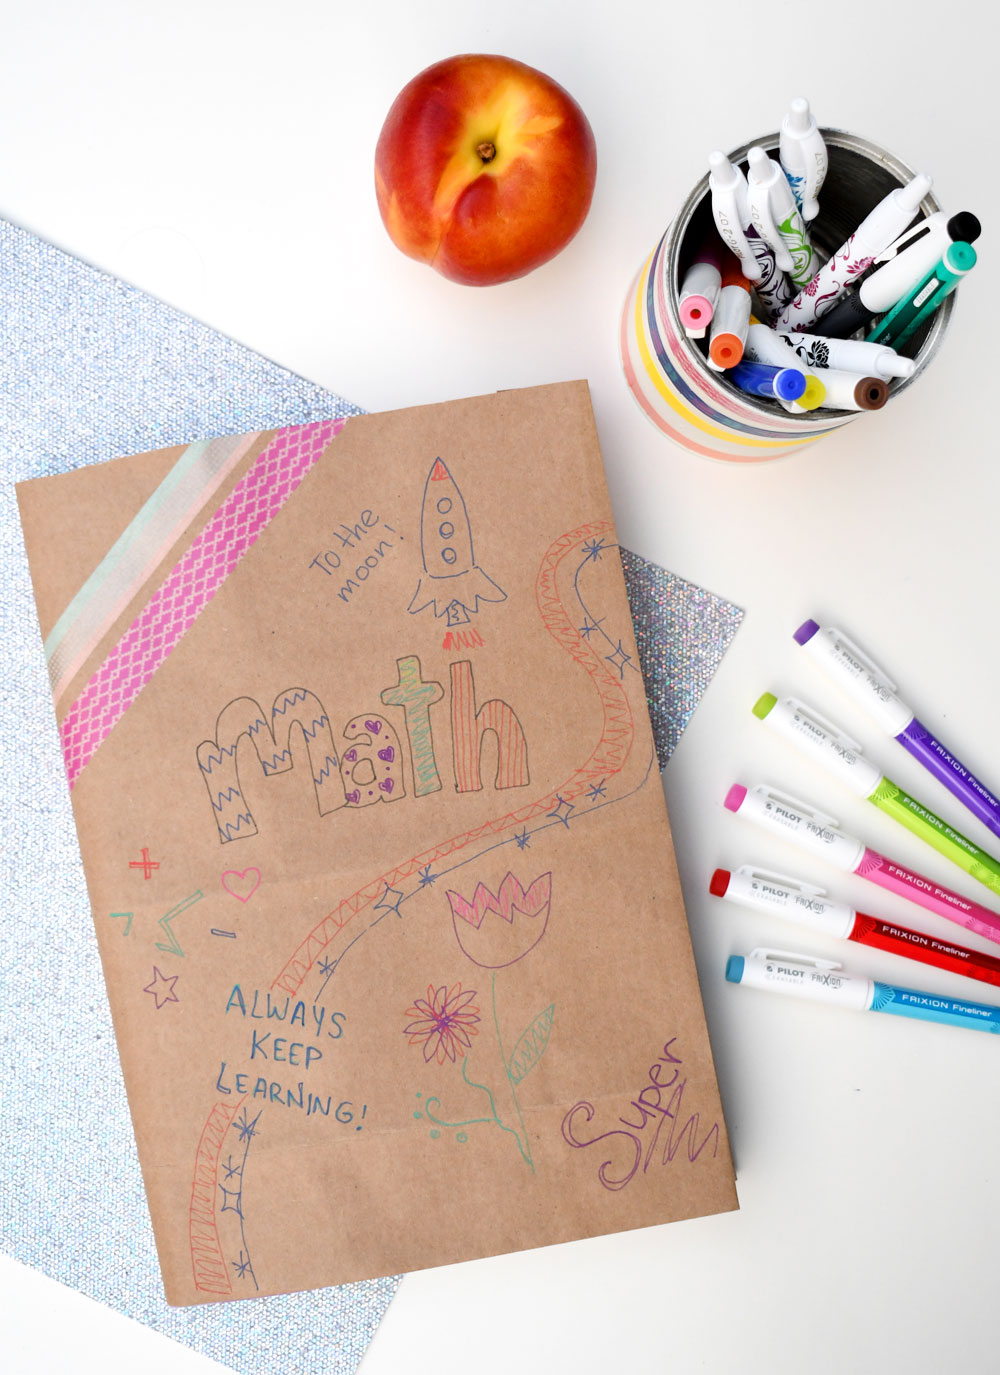 Colorful paper bag book covers